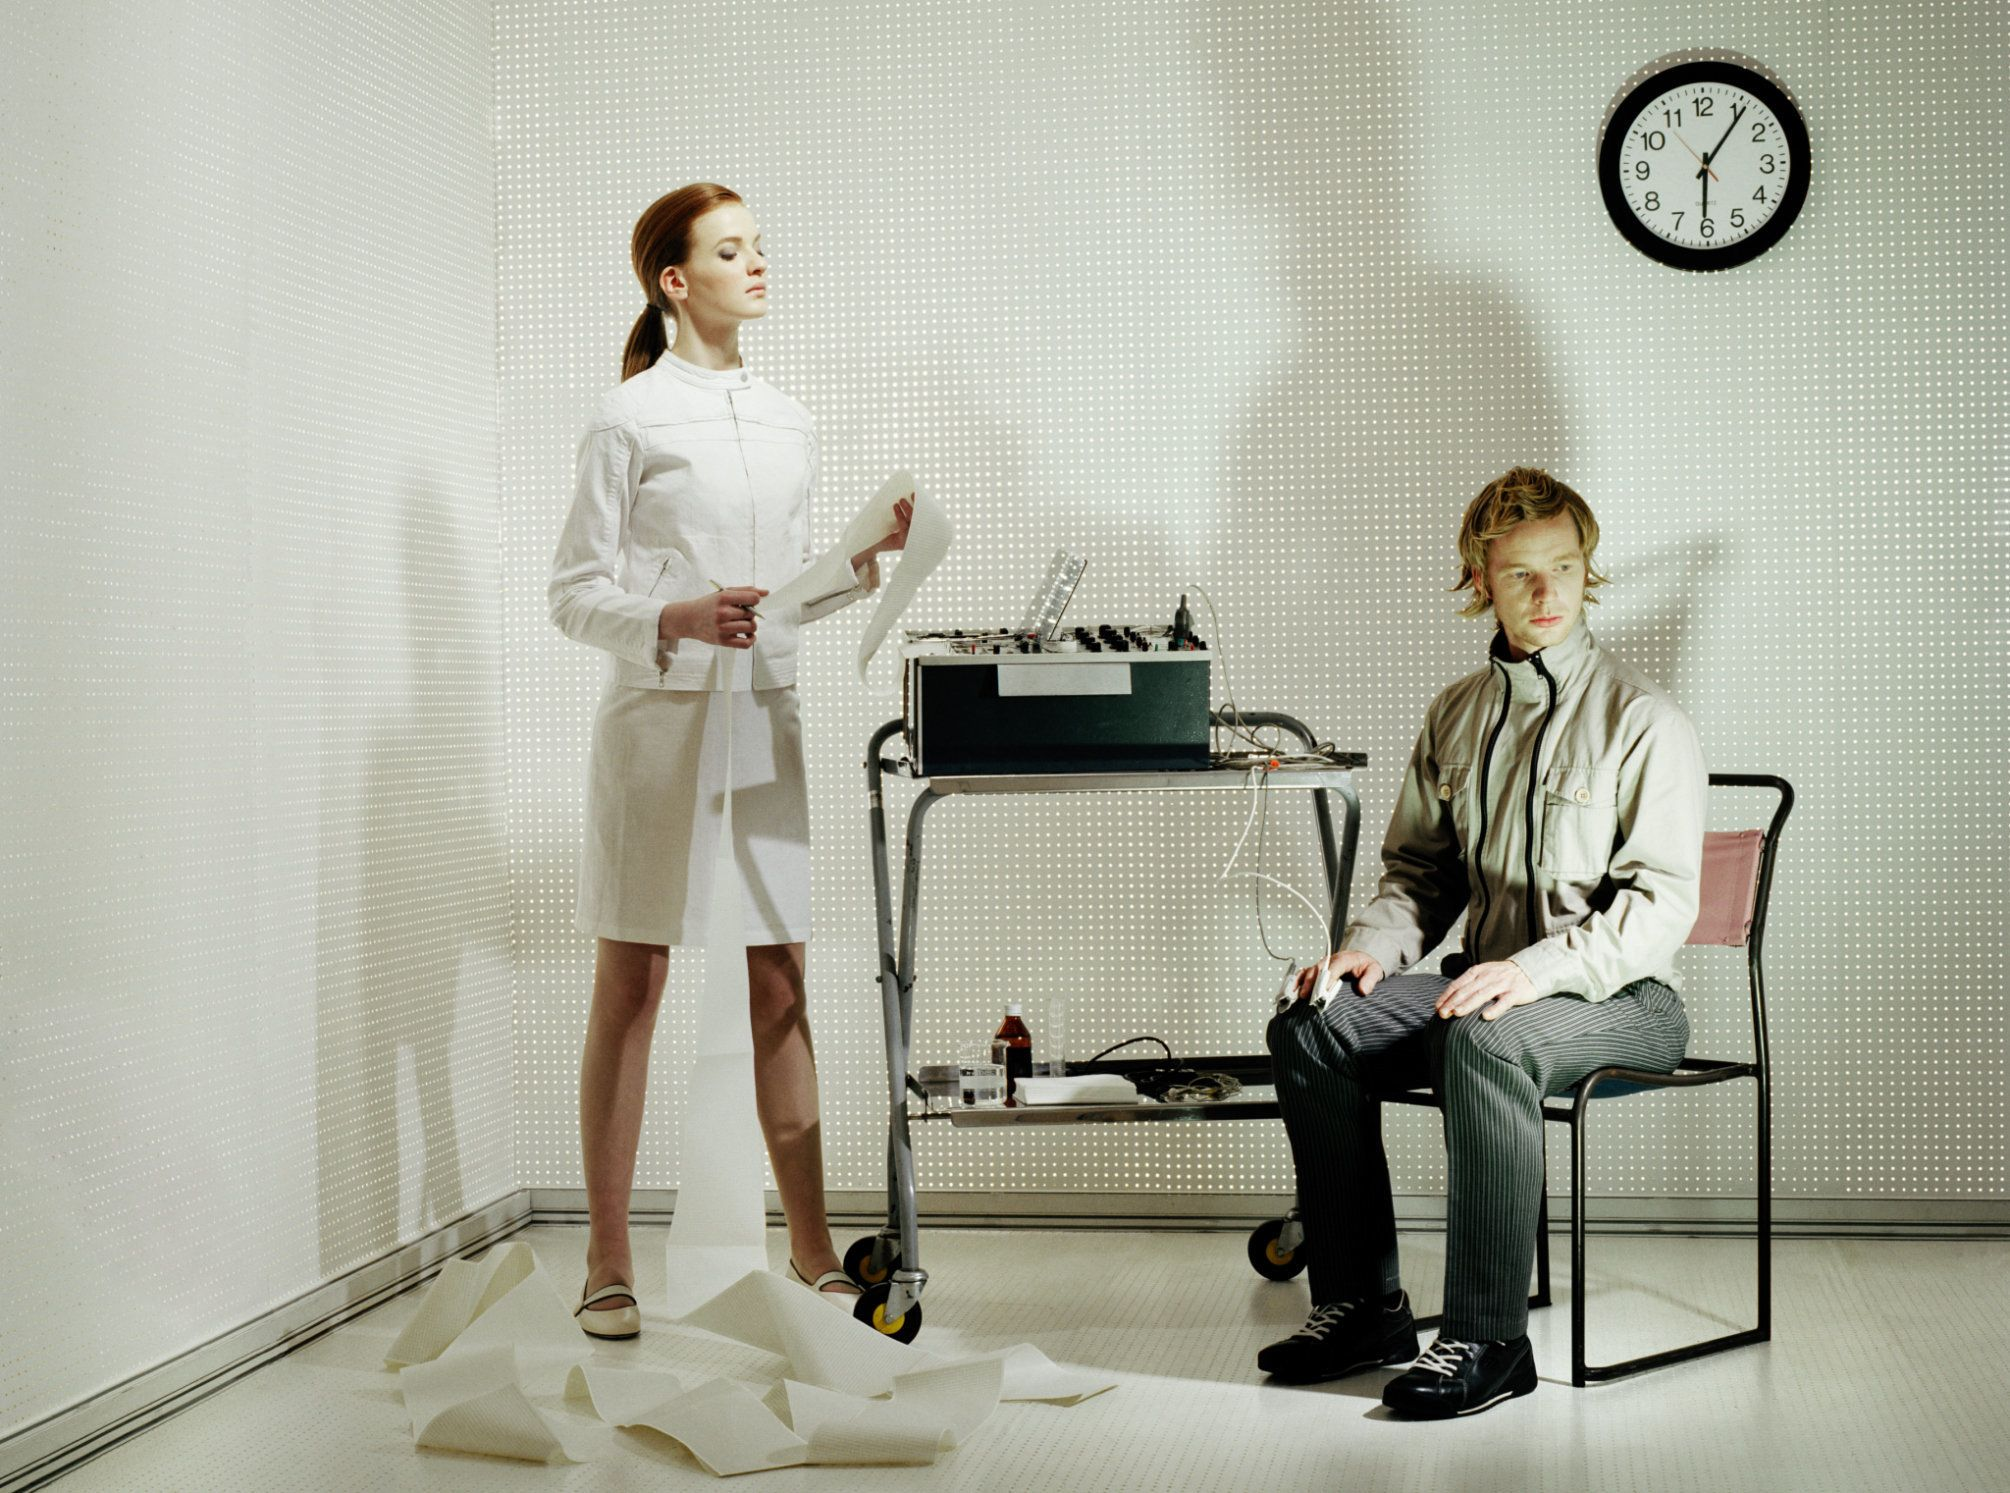 Young woman conducting lie detector test on man